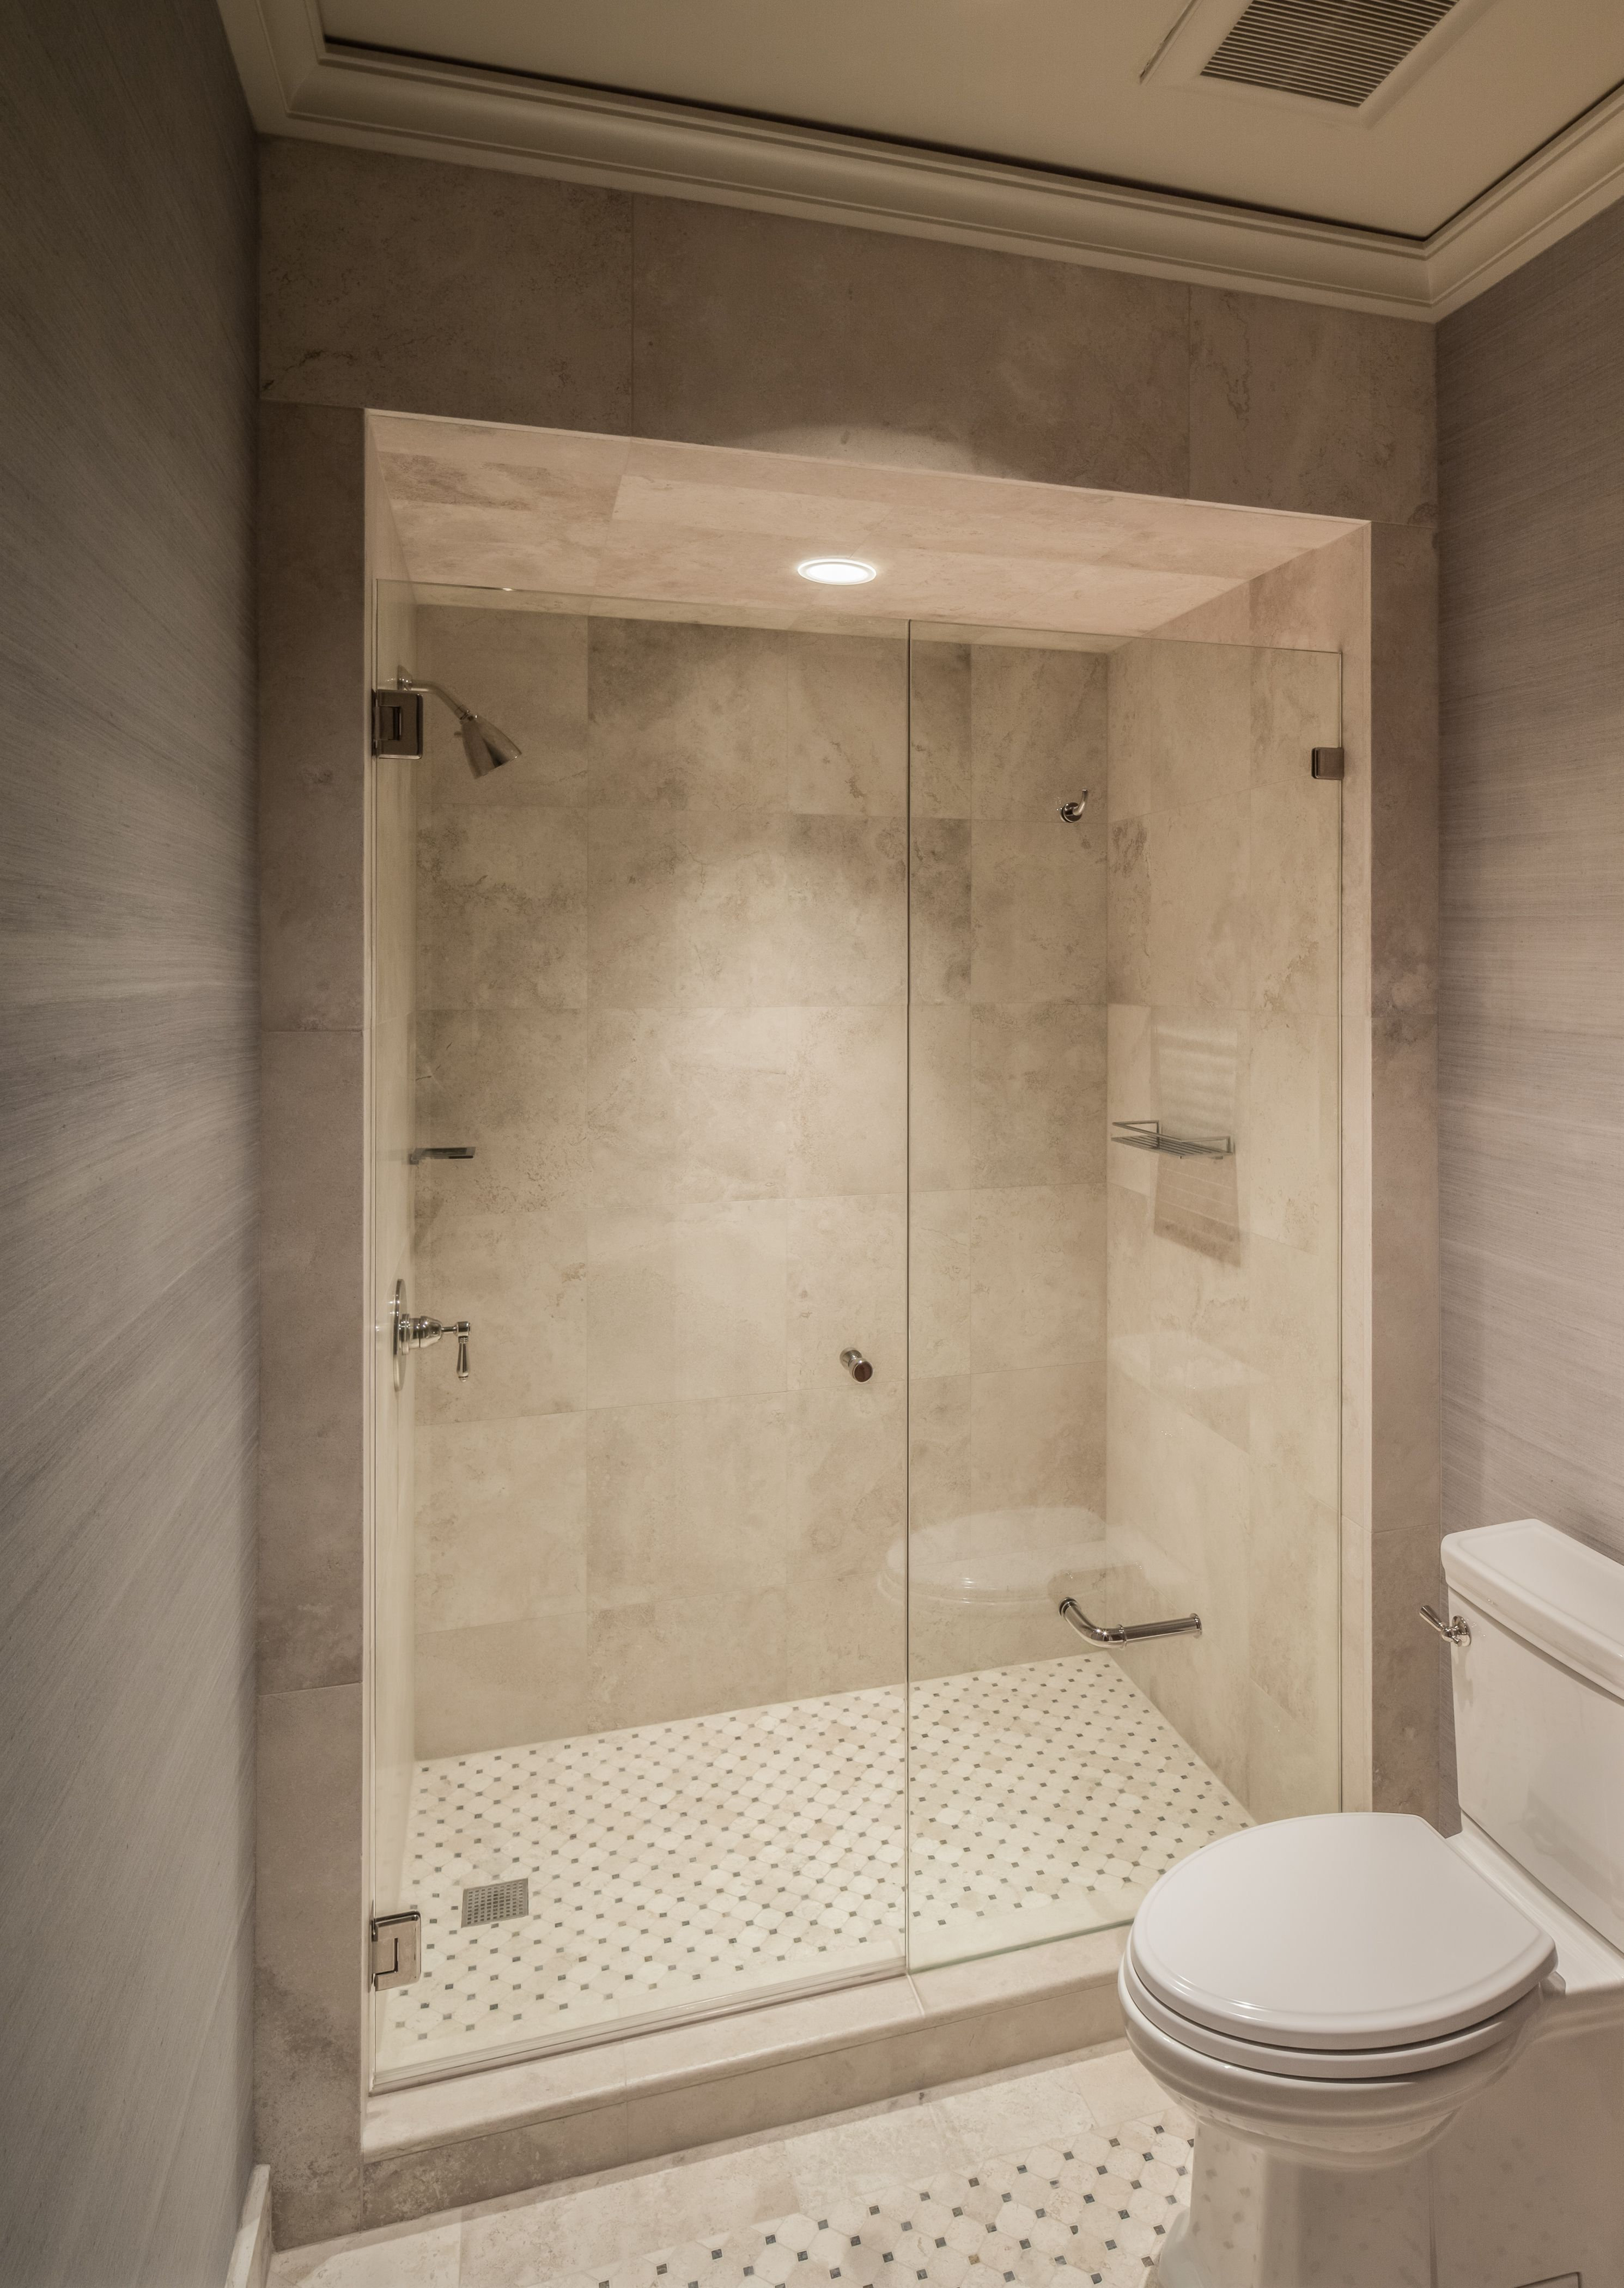 Toilet Paper Holder Glass Shower With Images Shower Doors